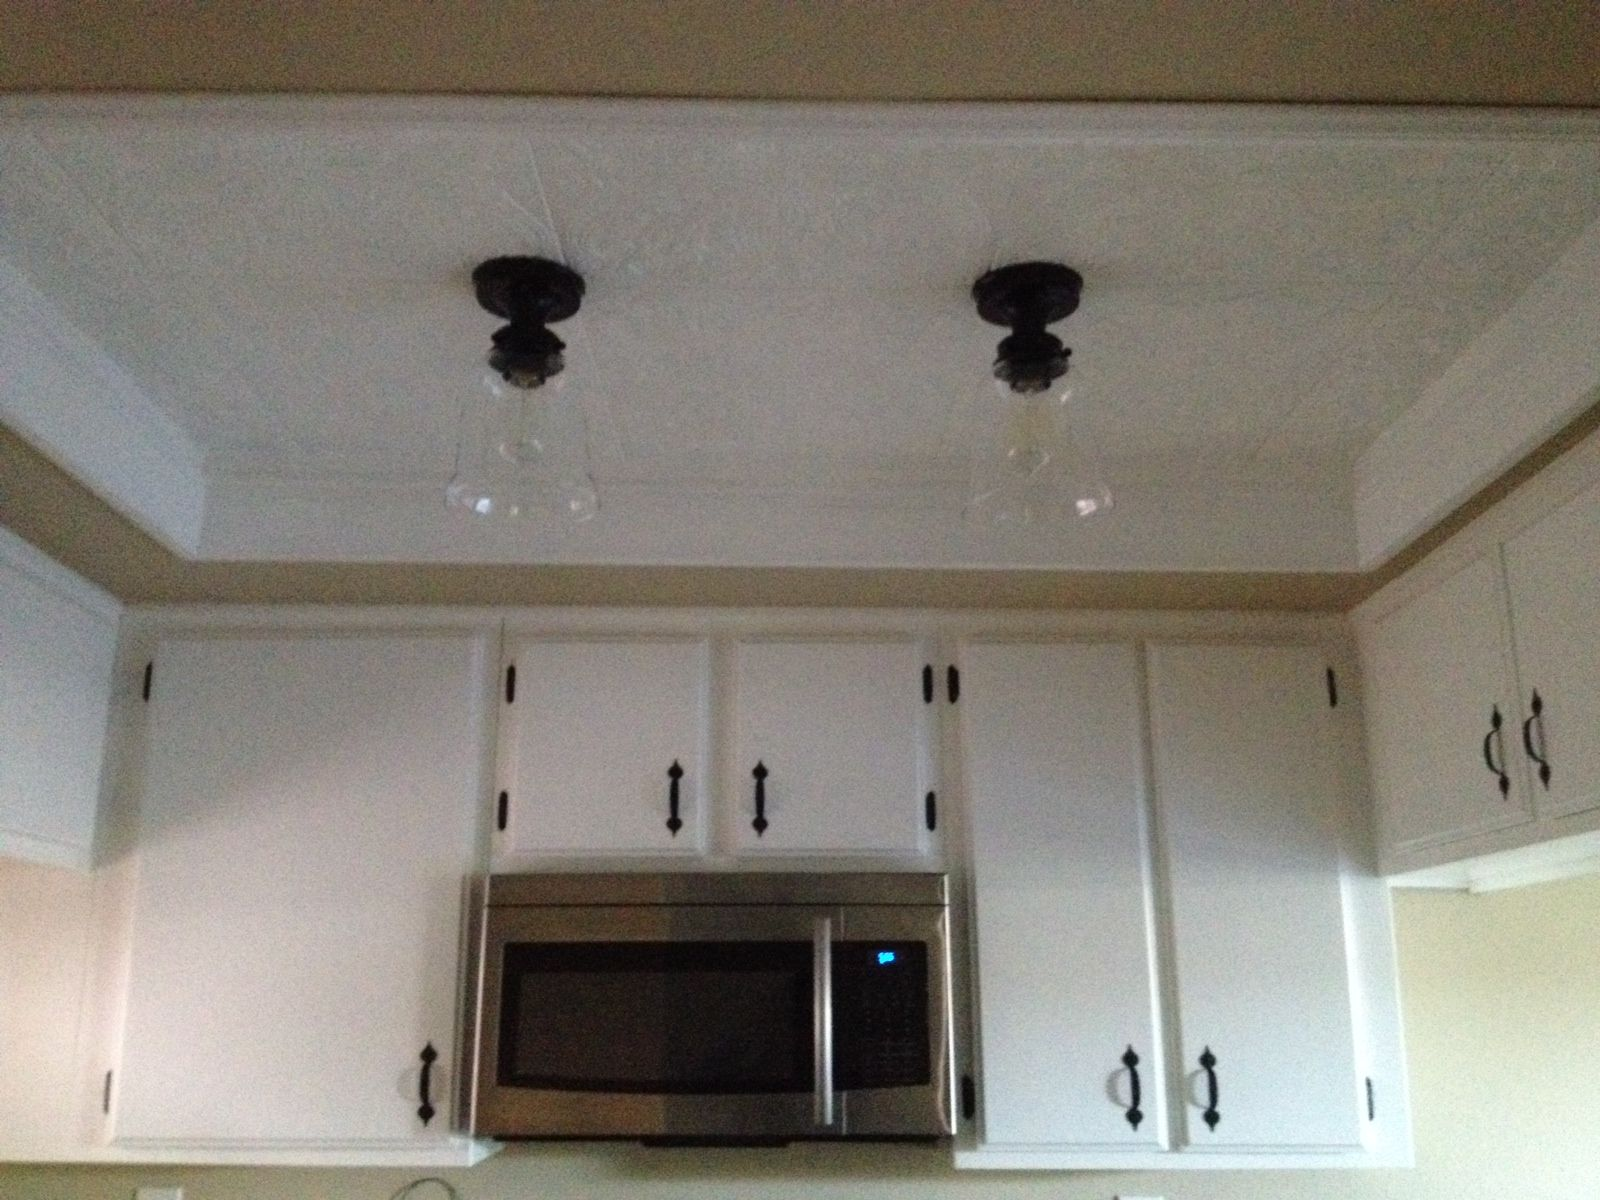 kitchen ceiling tiles delta faucets home depot tile styrofoam light update from old